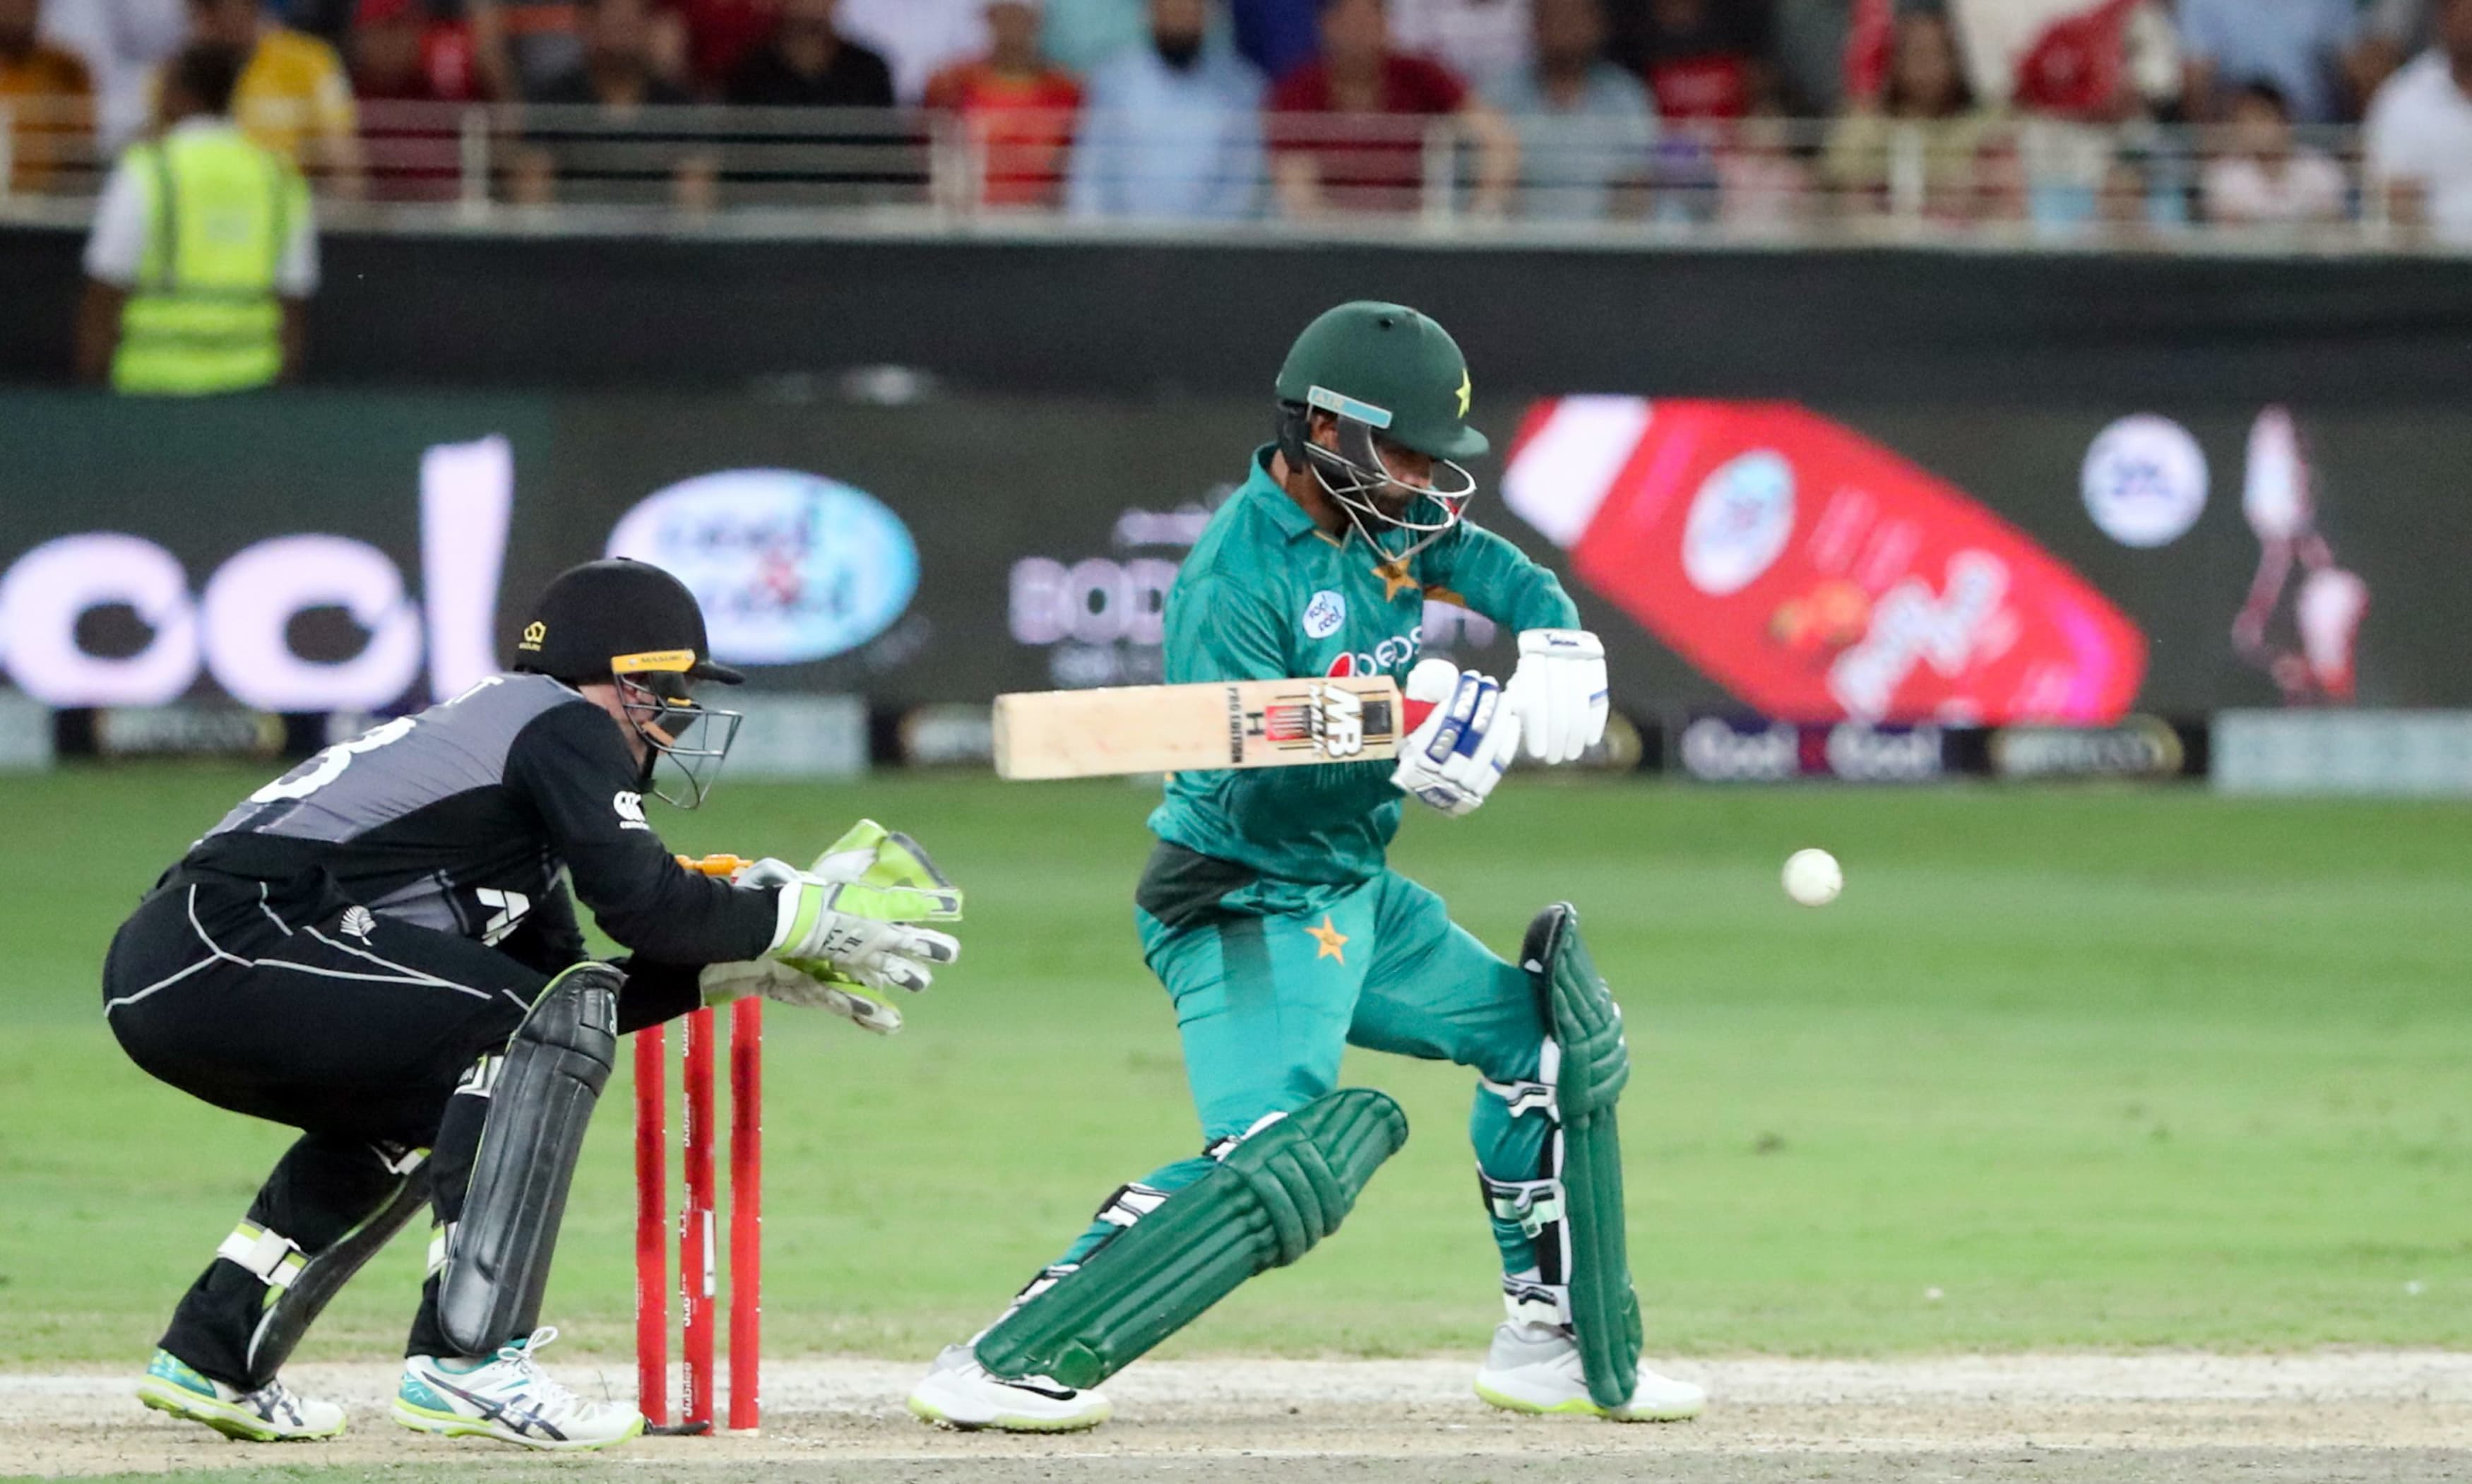 Muhammad Hafeez plays a shot during T20 cricket match against New Zealand. —AFP